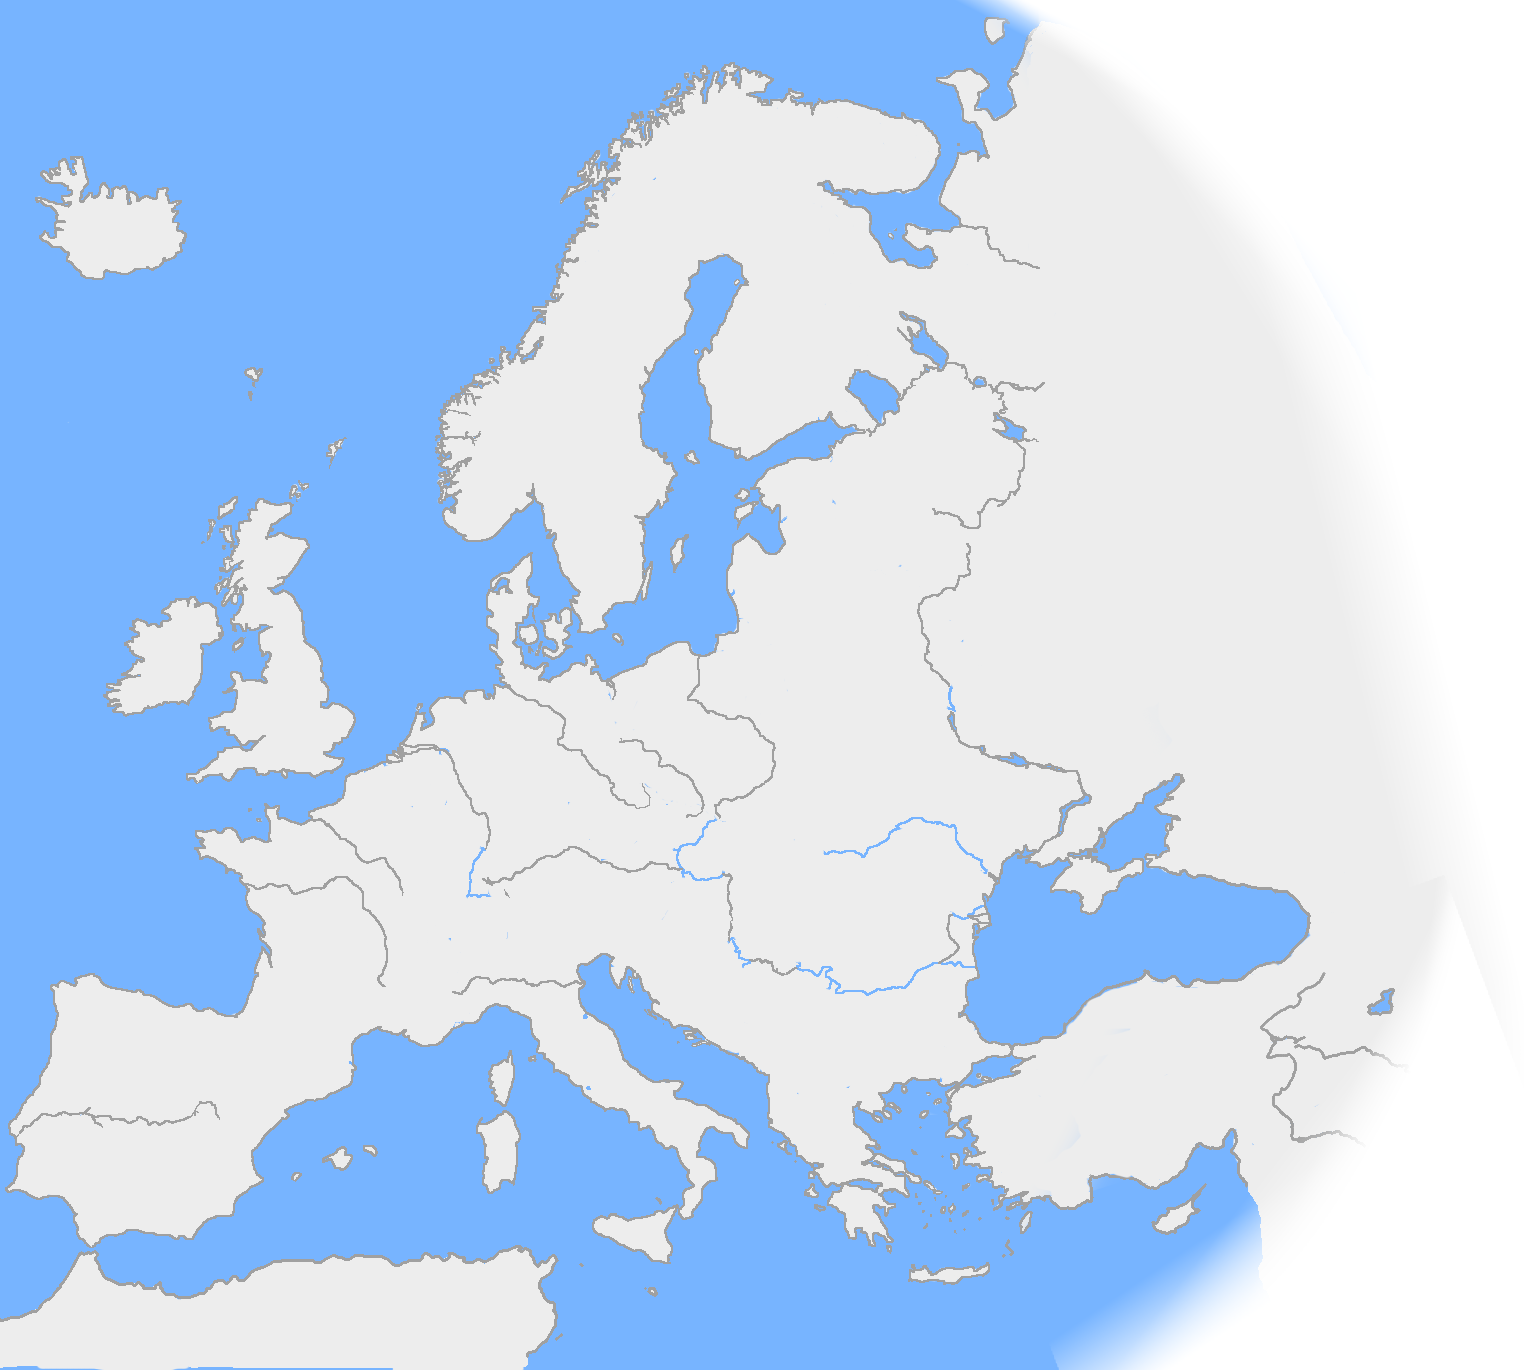 plain map of europe File:Europe plain rivers.png   Wikimedia Commons